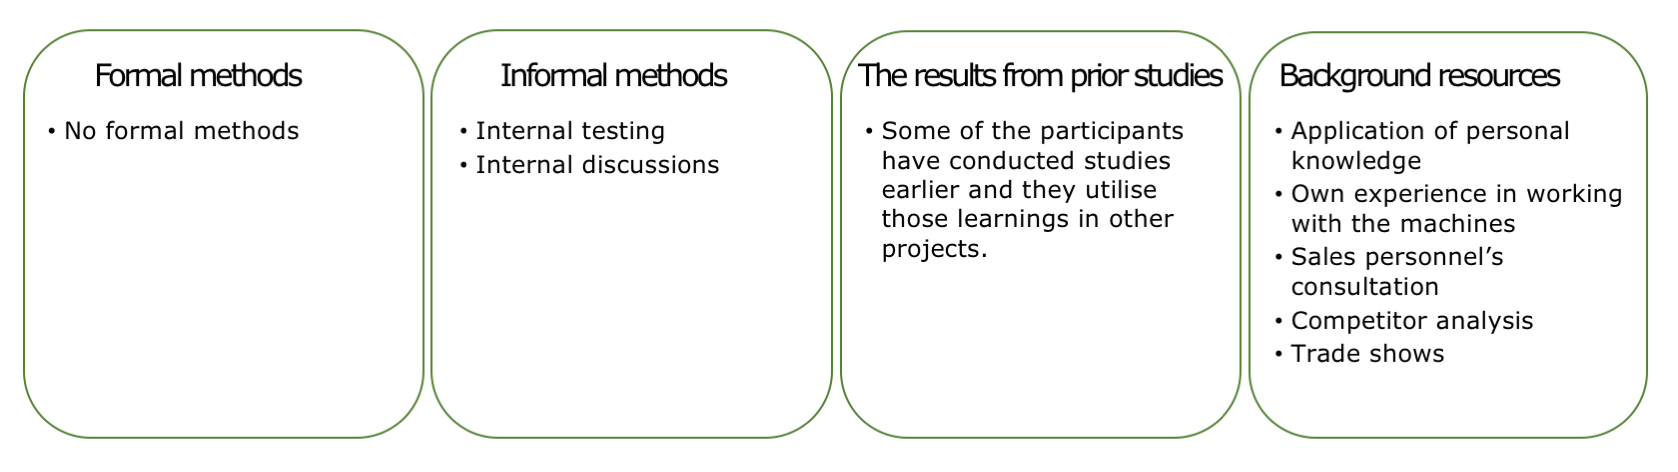 The projectND's method mix lacks formal methods, but relies on informal methods, results from prior studies anmd background resources.